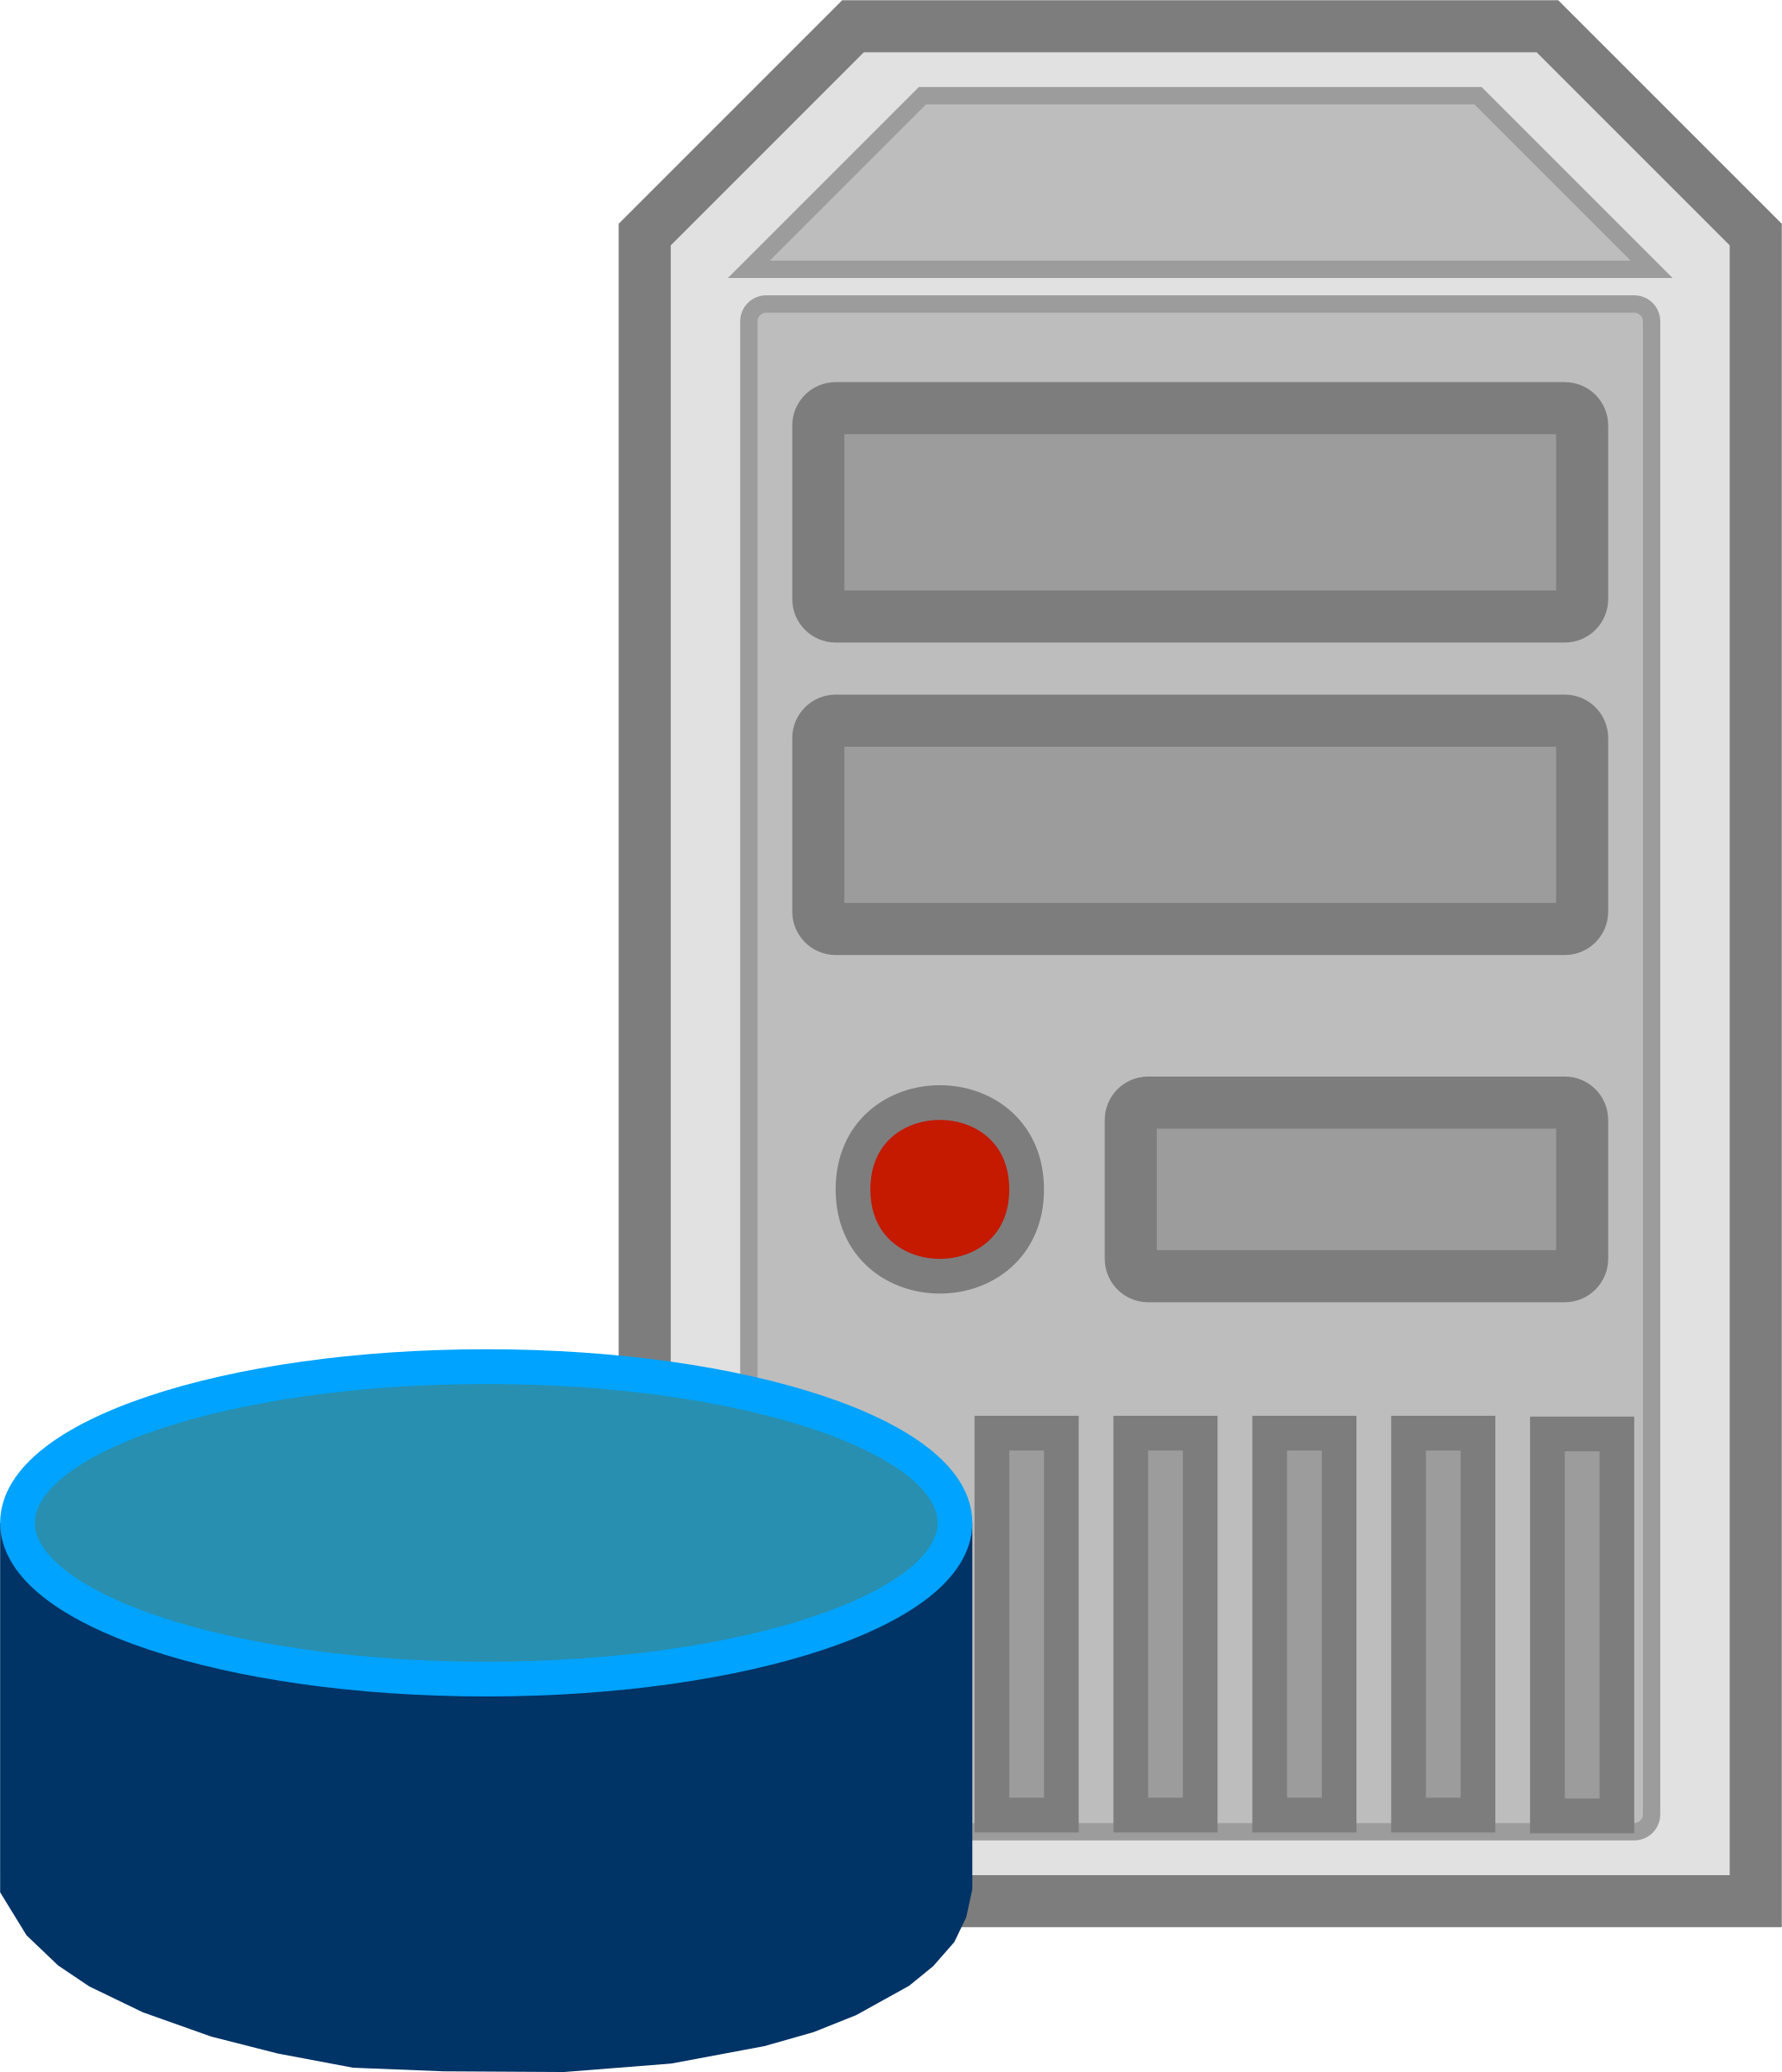 Free Oracle Database Cliparts, Download Free Clip Art, Free.